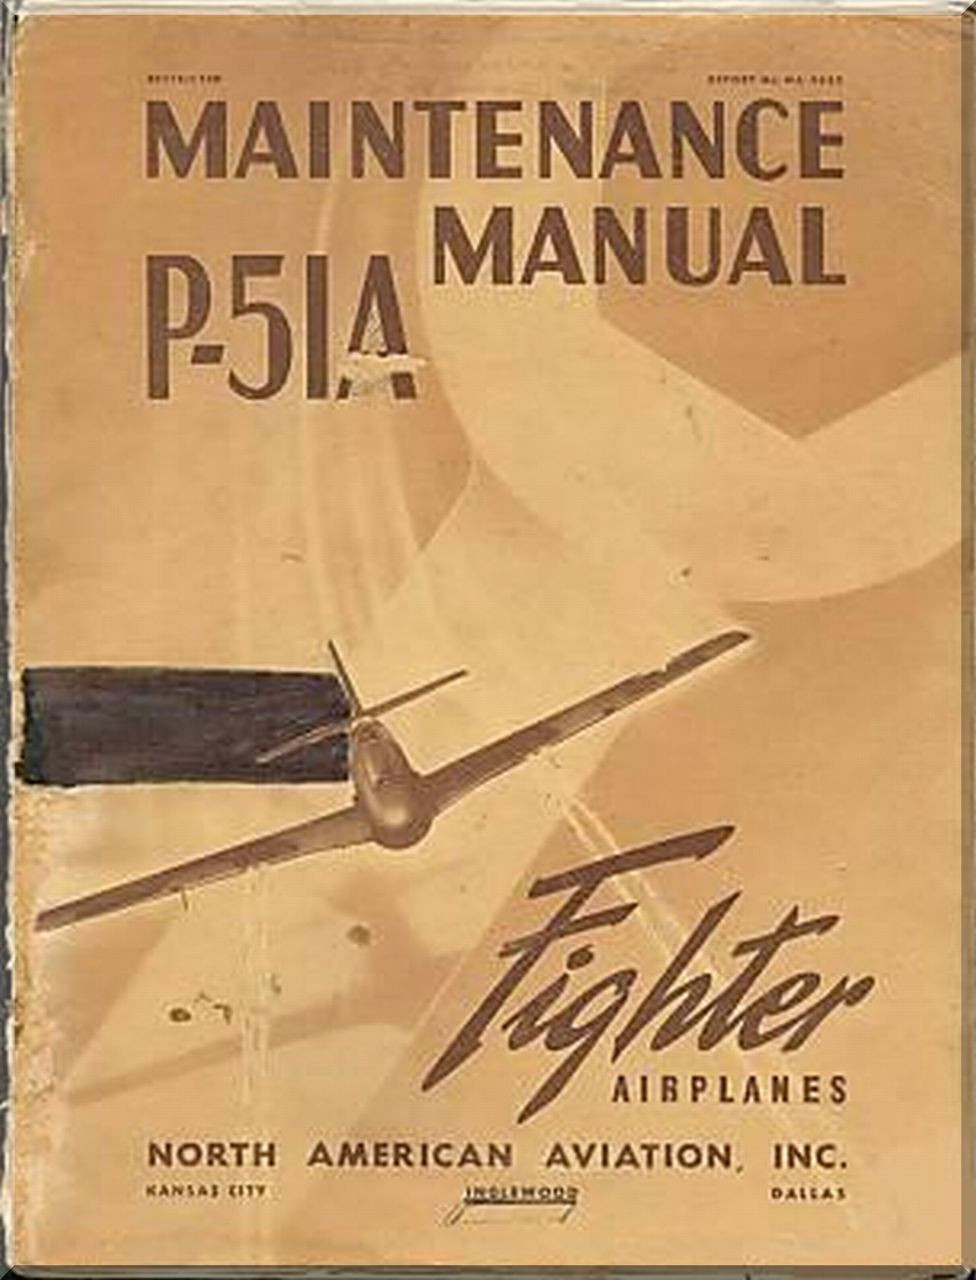 All About Aircraft Manuals Aviation Helicopter Engines Helicopterpartsdiagramnomenclature Robinson Helicopters Heli North American P 51 A Maintenance Manual